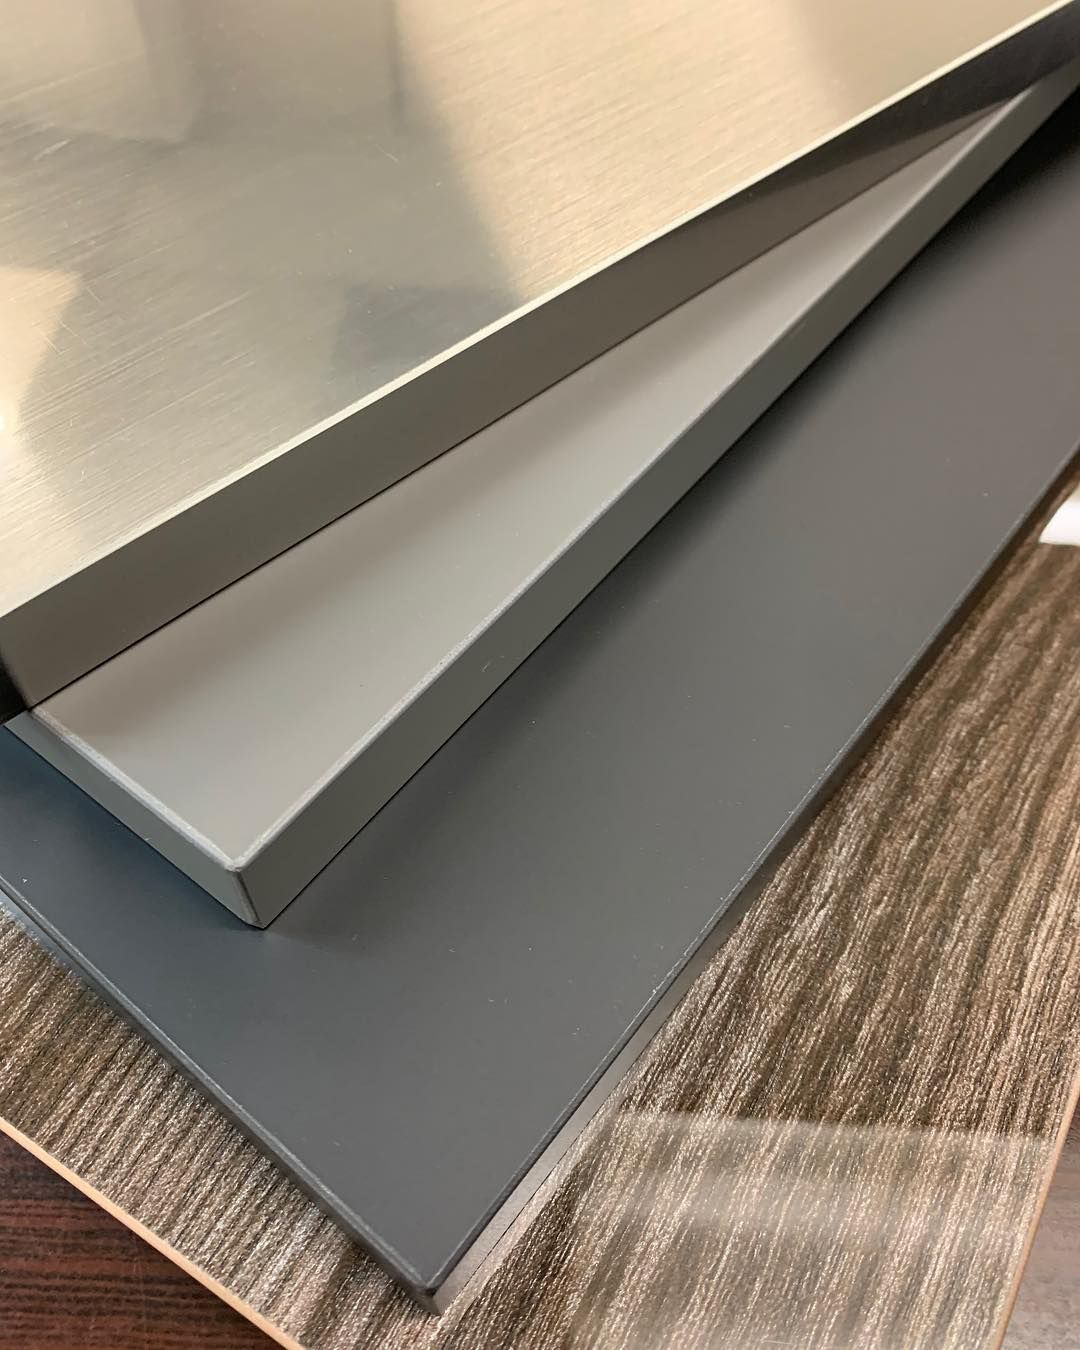 New Acrylic Kitchen And Cabinets Doors Are Now Available We Have Glossy In Wood Finish And Matte Finished In Gray And Wood Finish Cabinet Doors Grey And Beige